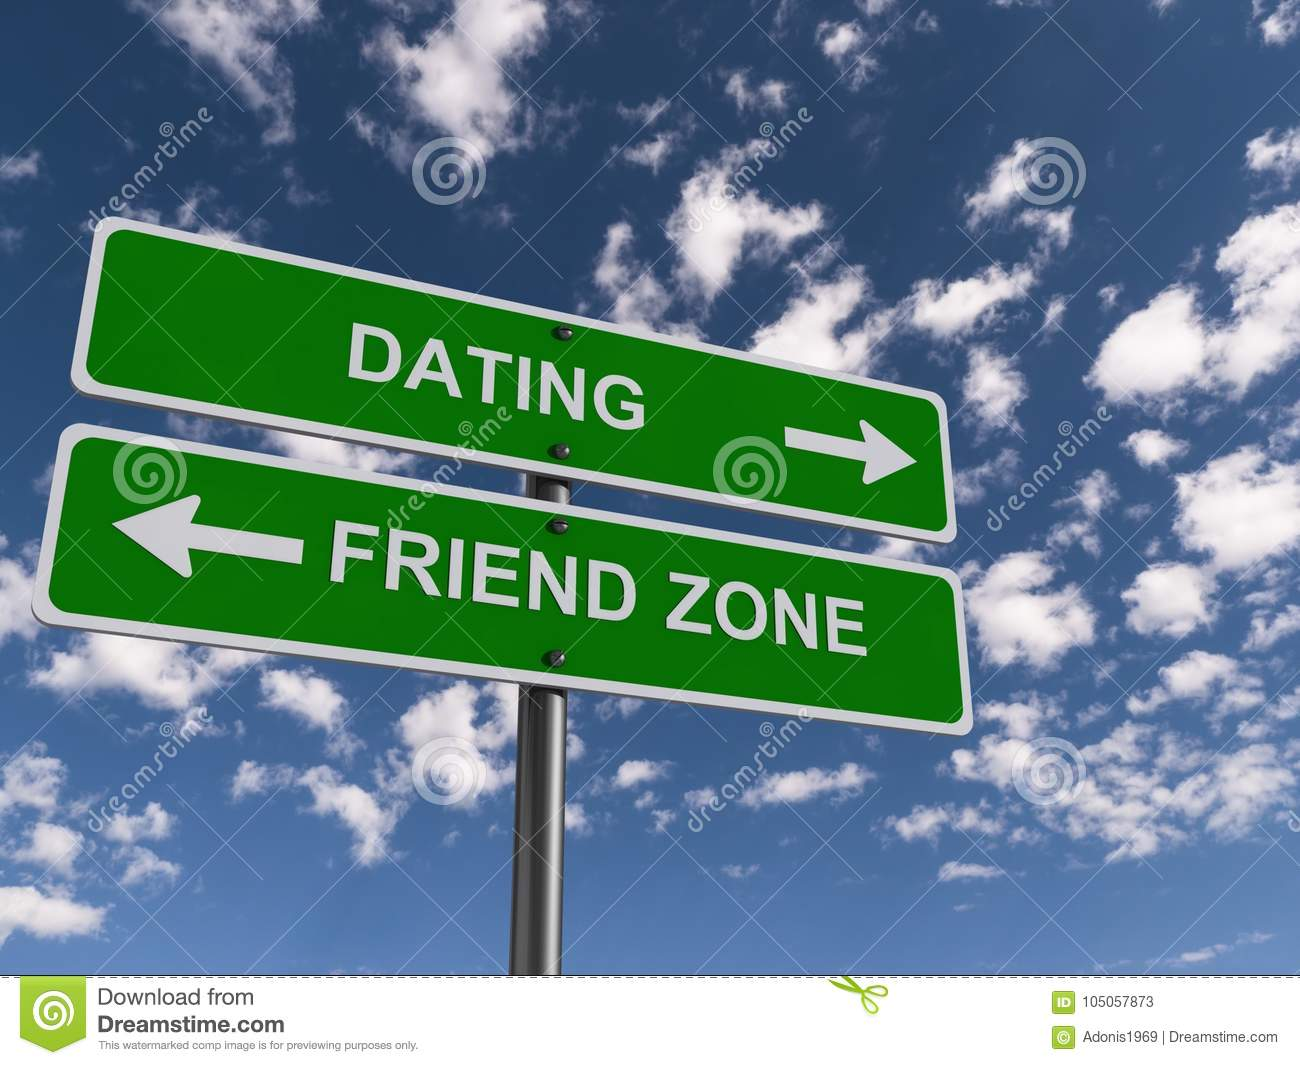 Zone dating